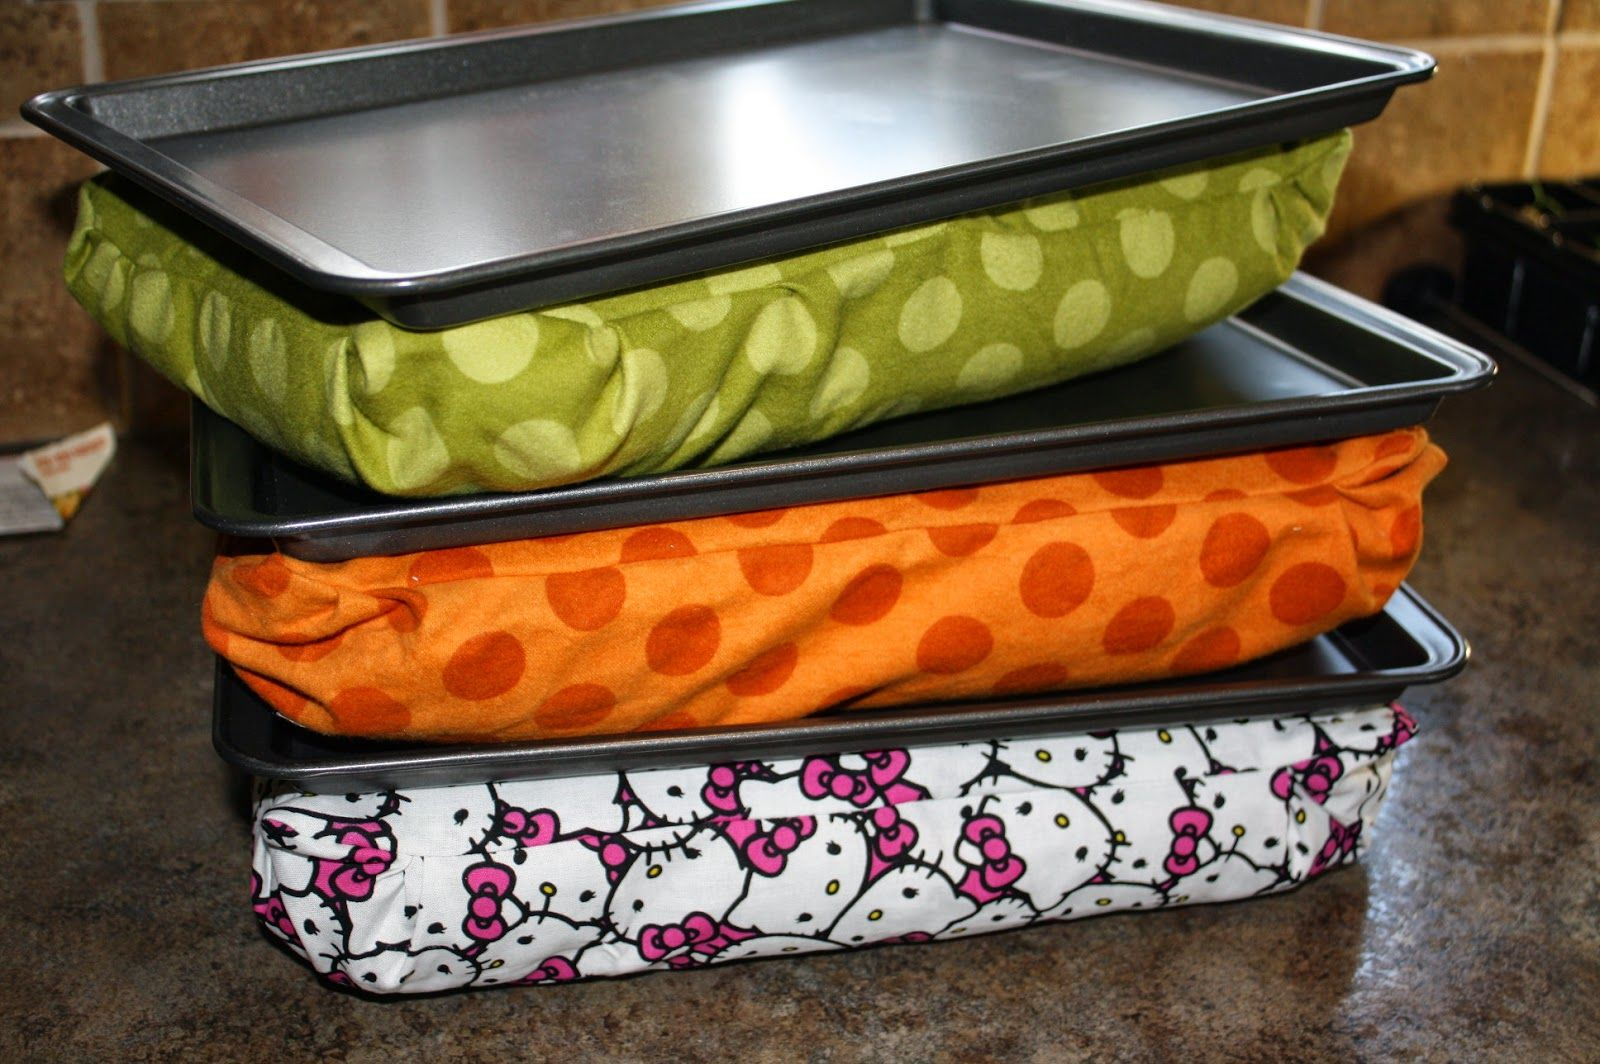 Diy Cookie Sheet Lap Desk Part 1 Making The Lap Desk Travel Tray Diy For Kids Road Trip With Kids